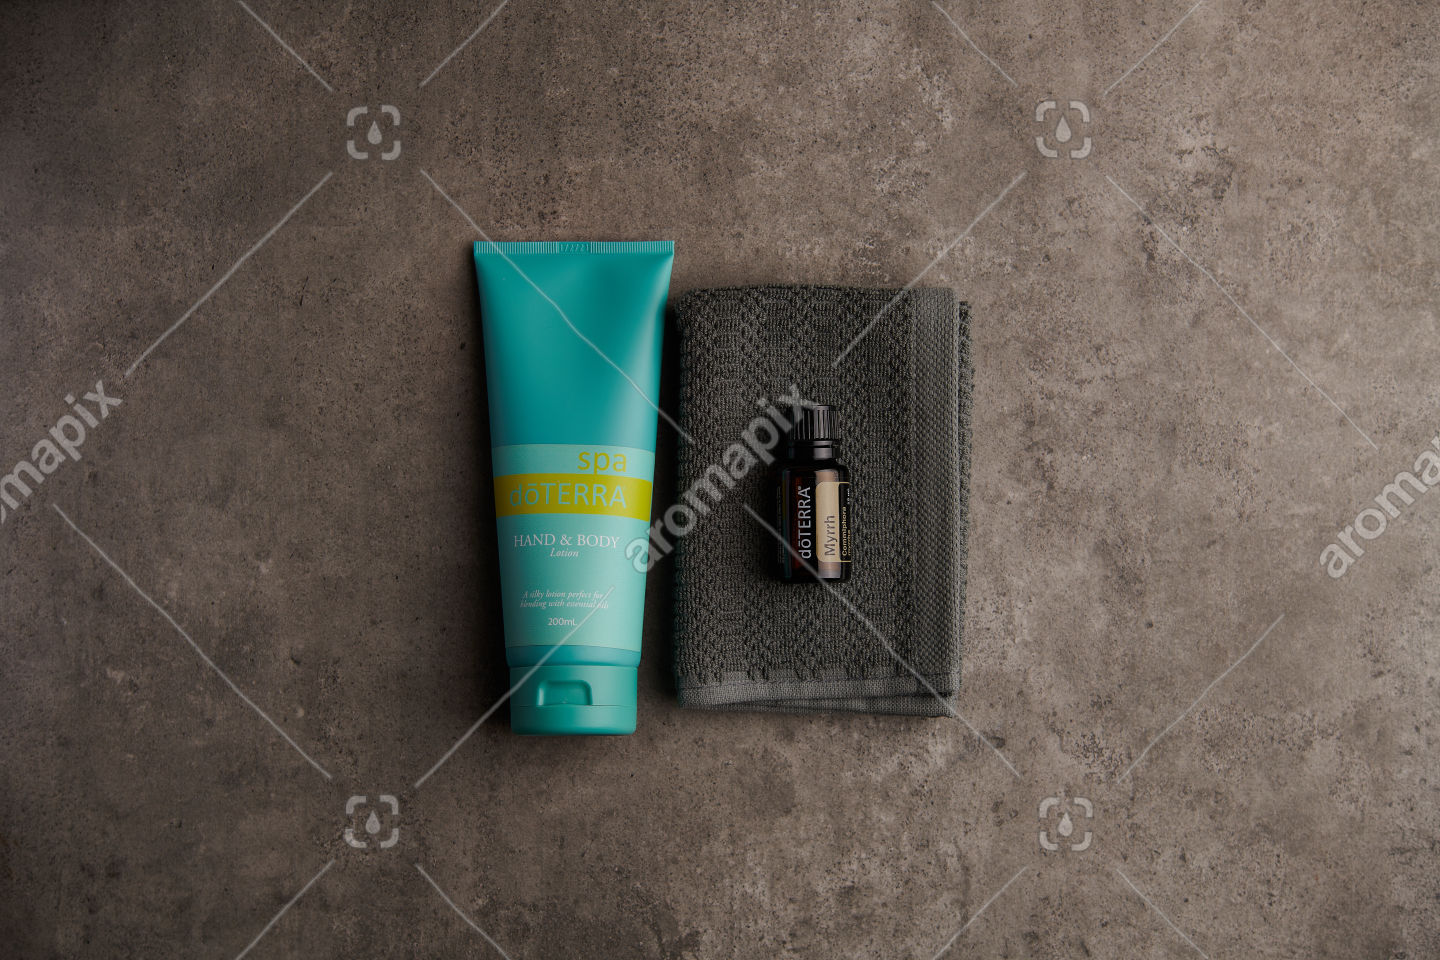 doTERRA Spa Hand and Body Lotion and Myrrh essential oil on stone